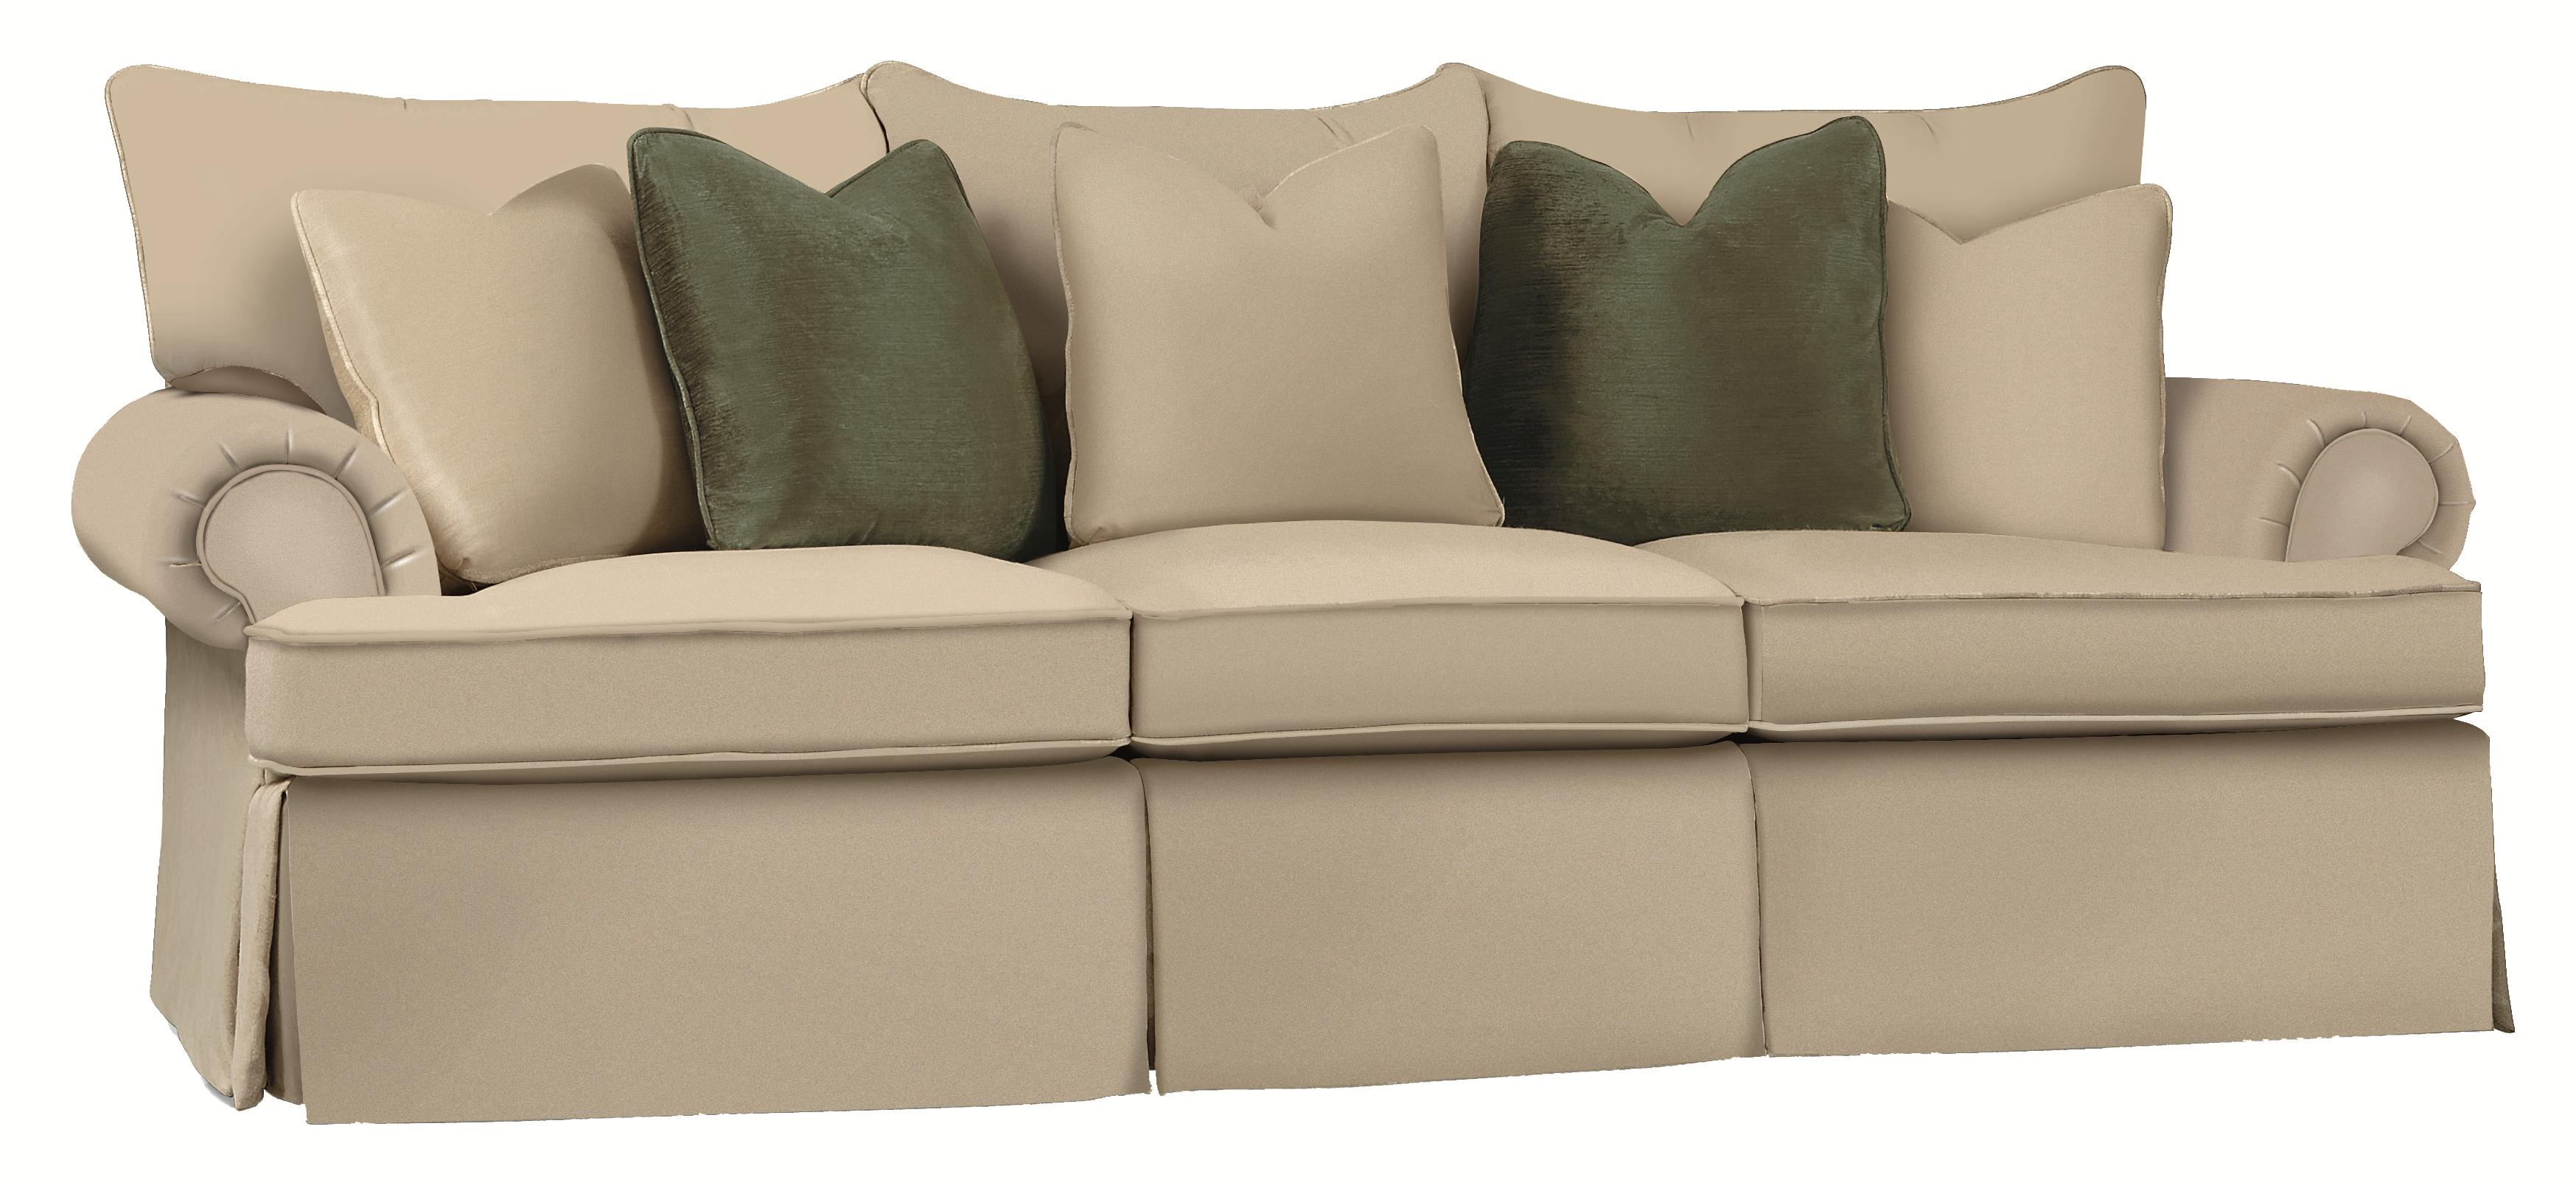 Bernhardt Danielle Standard Sized Stationary Sofa Couch